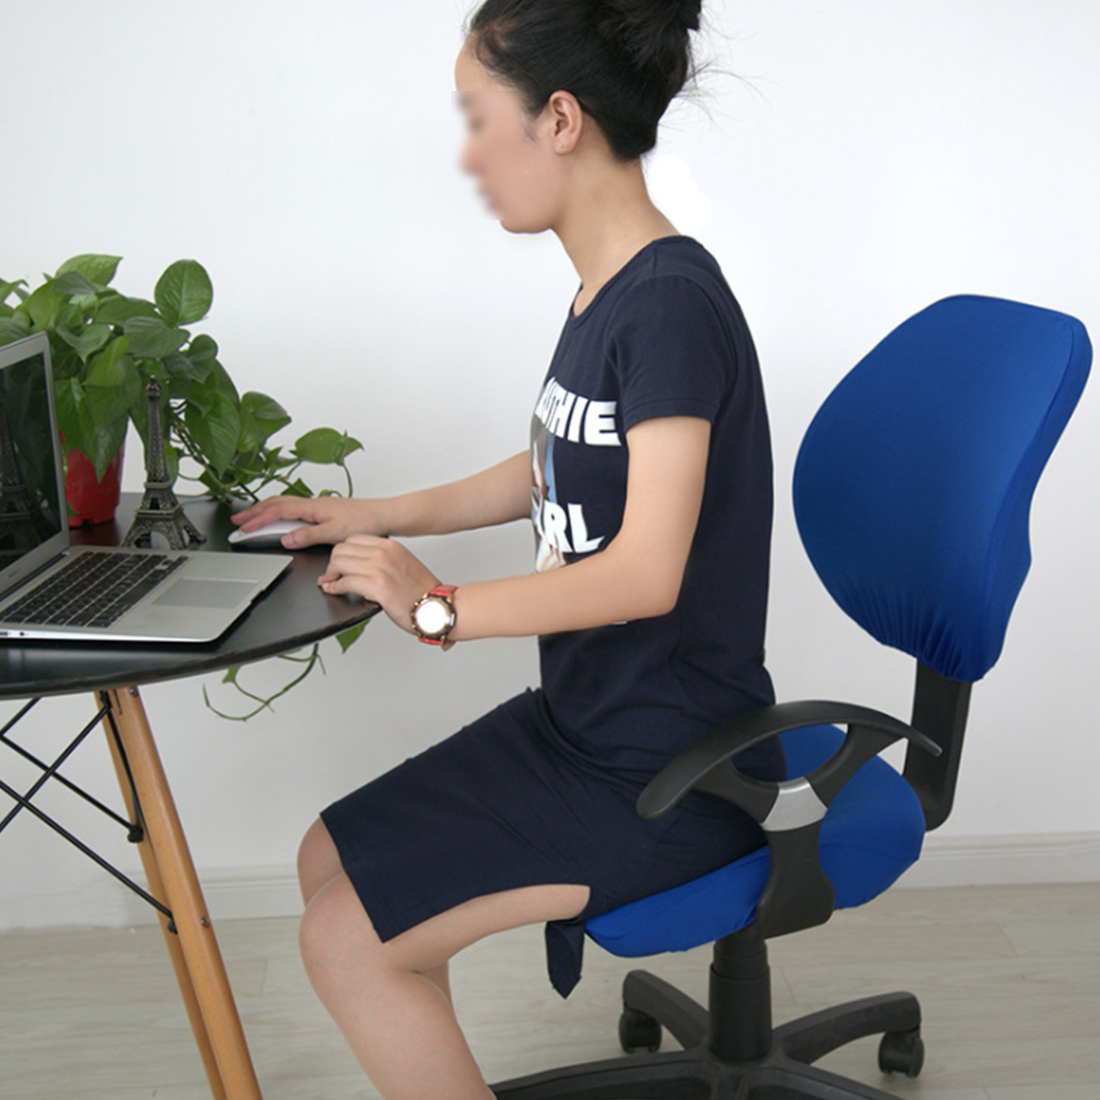 Elastic Chair Covers Made with Polyester Material For Office and Computer Chair in Universal Size 4